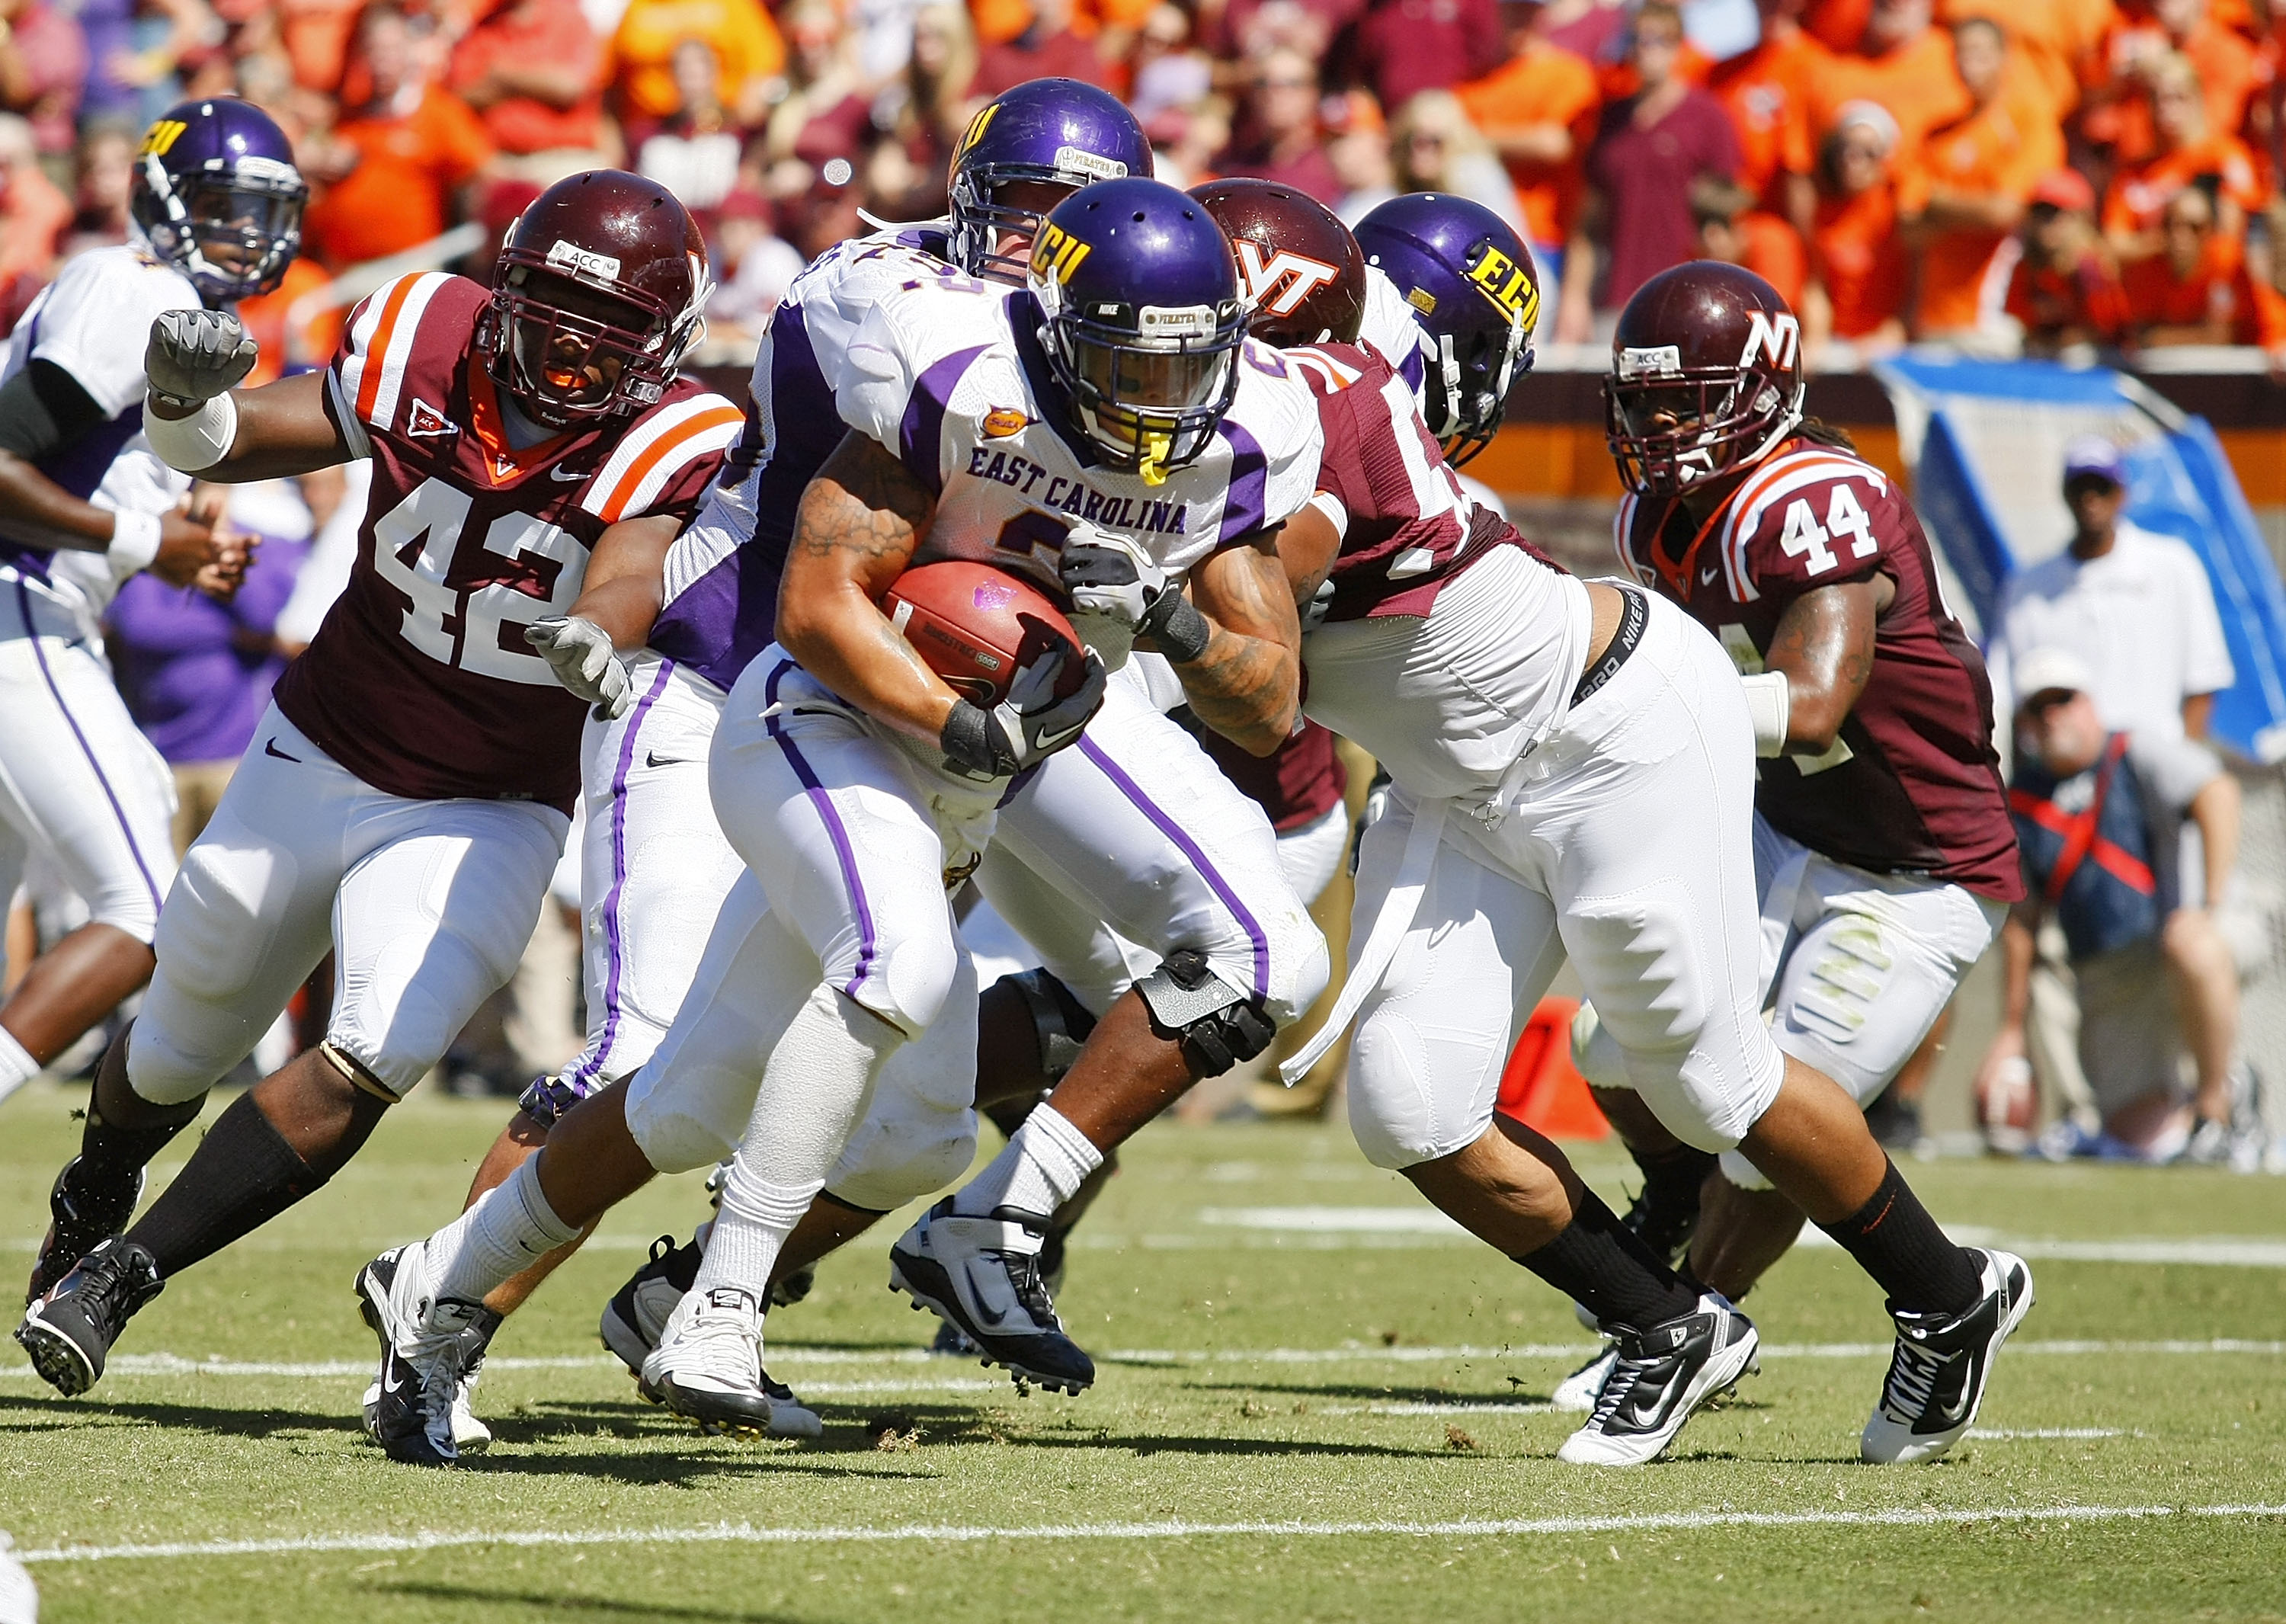 BLACKSBURG, VA - SEPTEMBER 18:  Running back Jonathan Williams #2 of the East Carilona Pirates runs with the ball for a touchdown as defensive end J.R. Collins #42 of the Virginia Tech Hokies chases at Lane Stadium on September 18, 2010 in Blacksburg, Vir